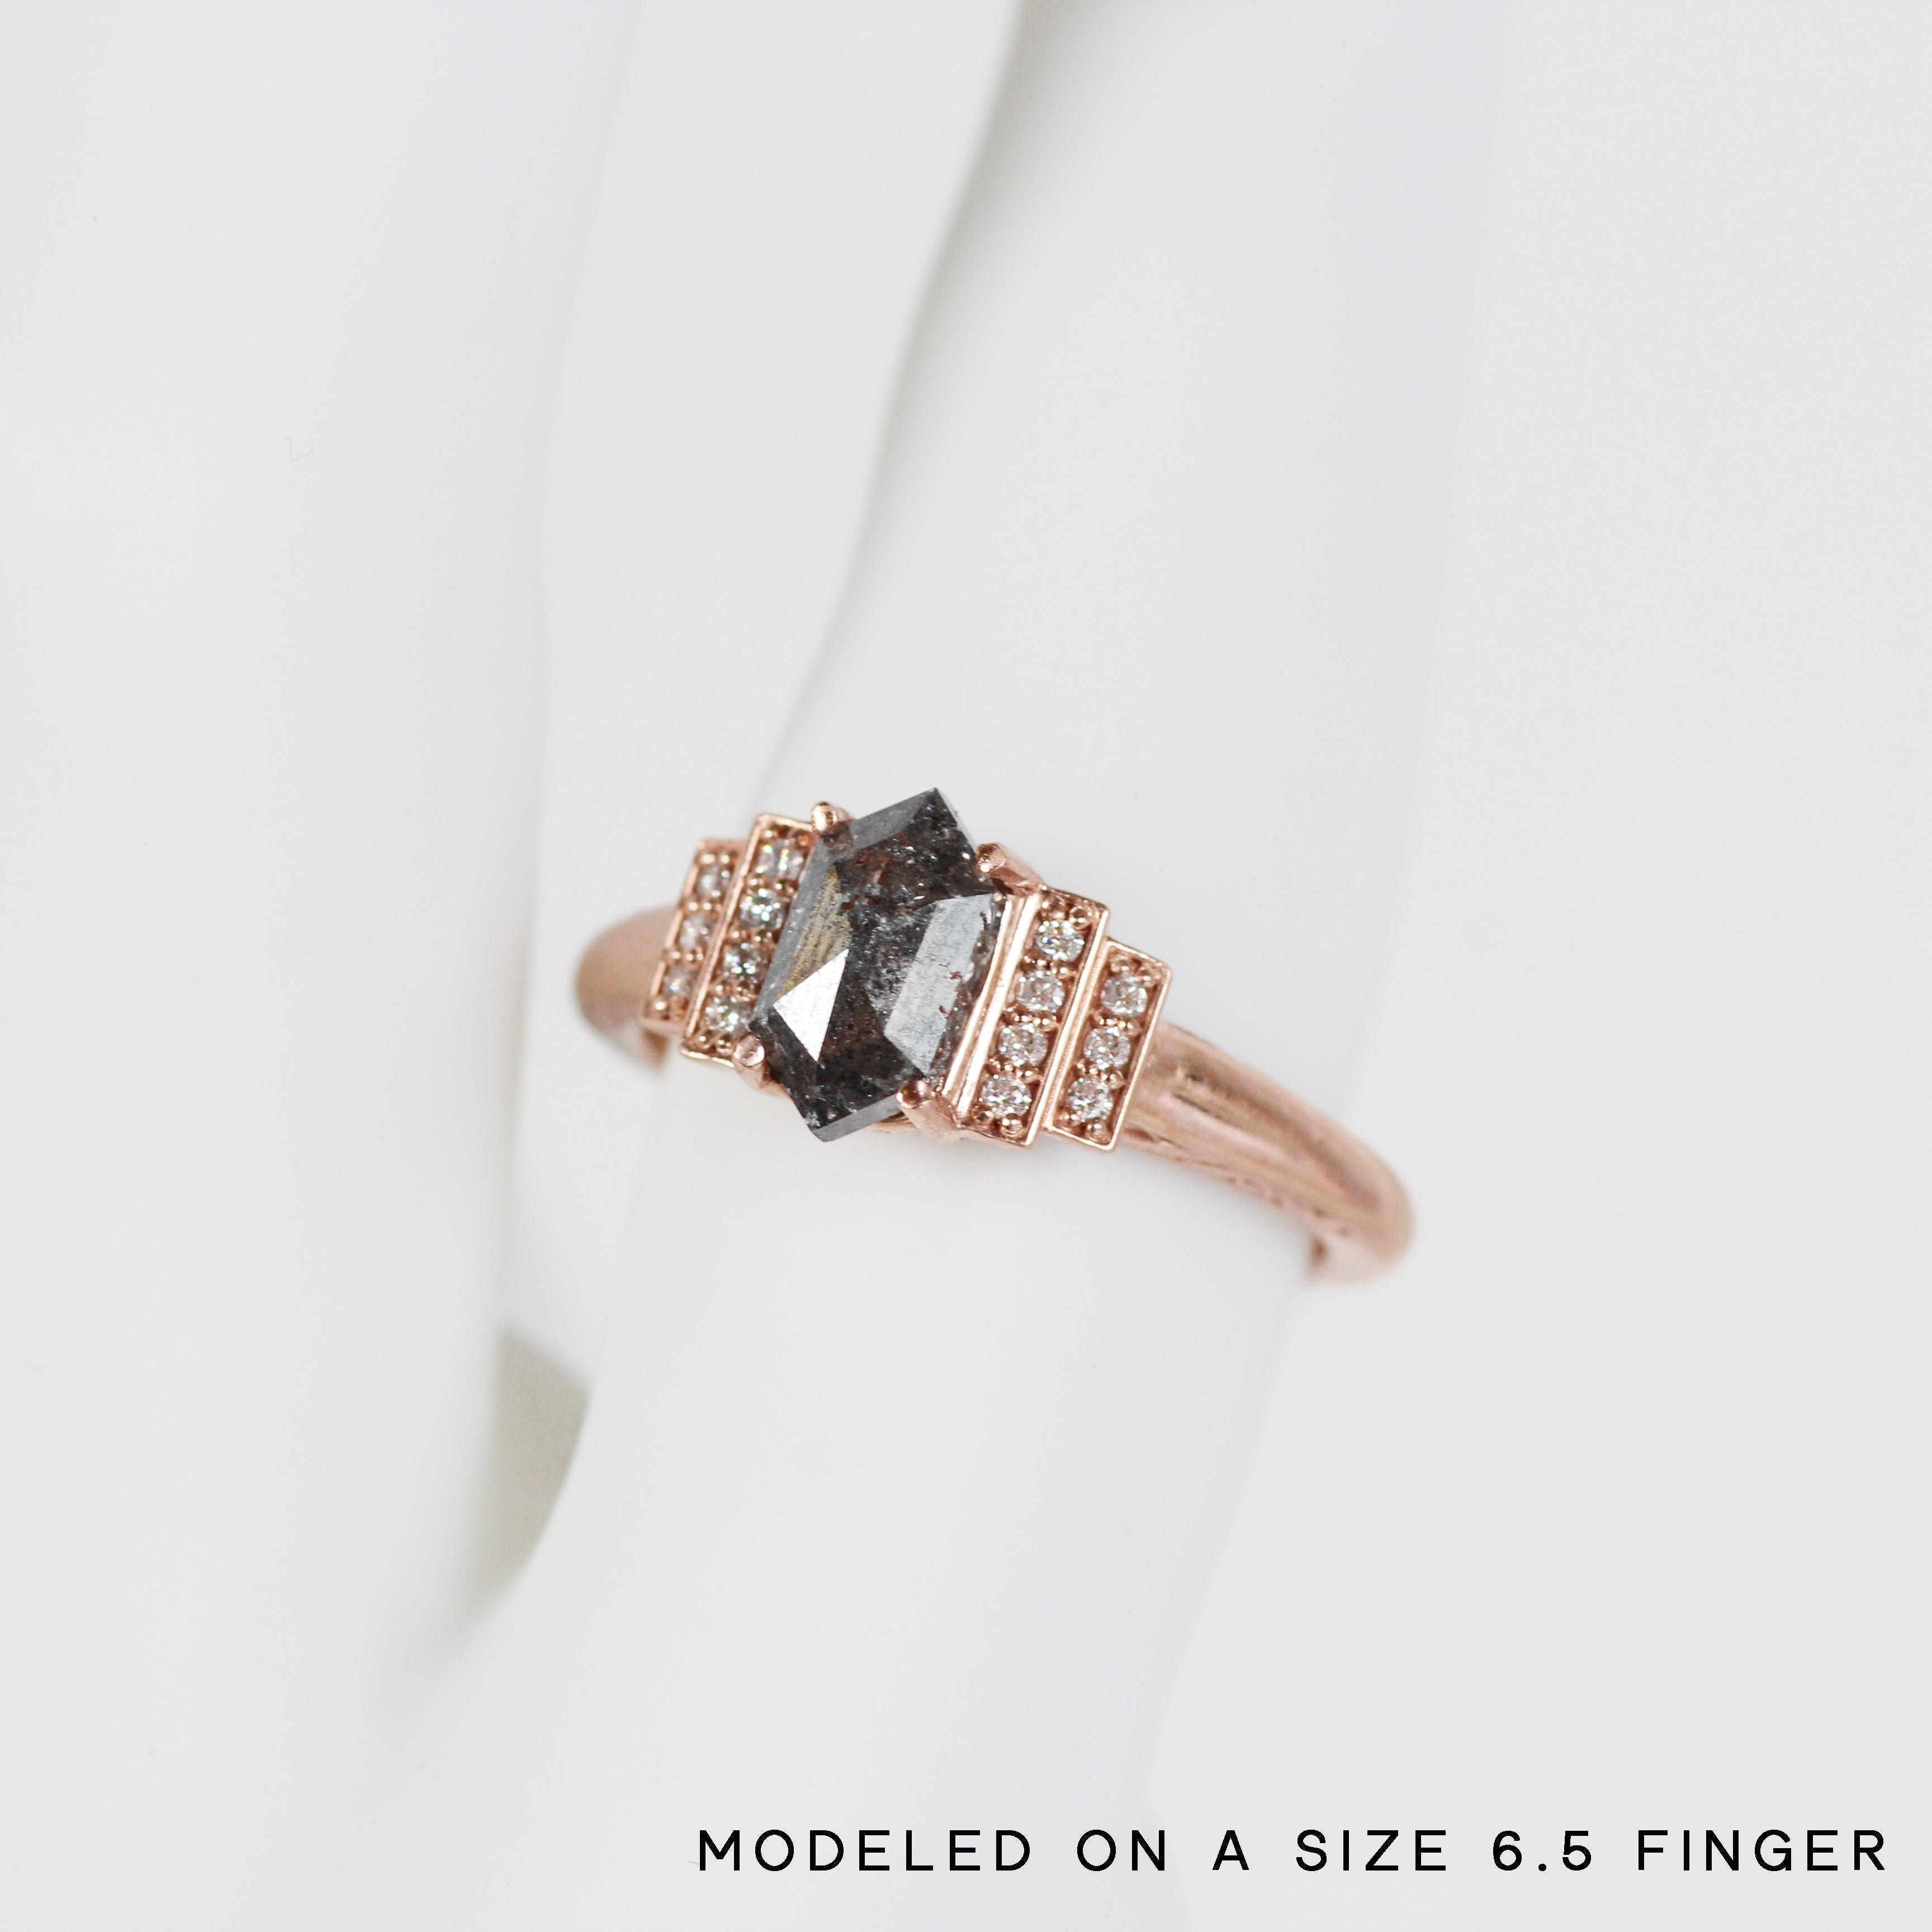 Isadora Ring with a Dark Celestial Hexagon Diamond and Diamond Accents - Ready to Size and Ship